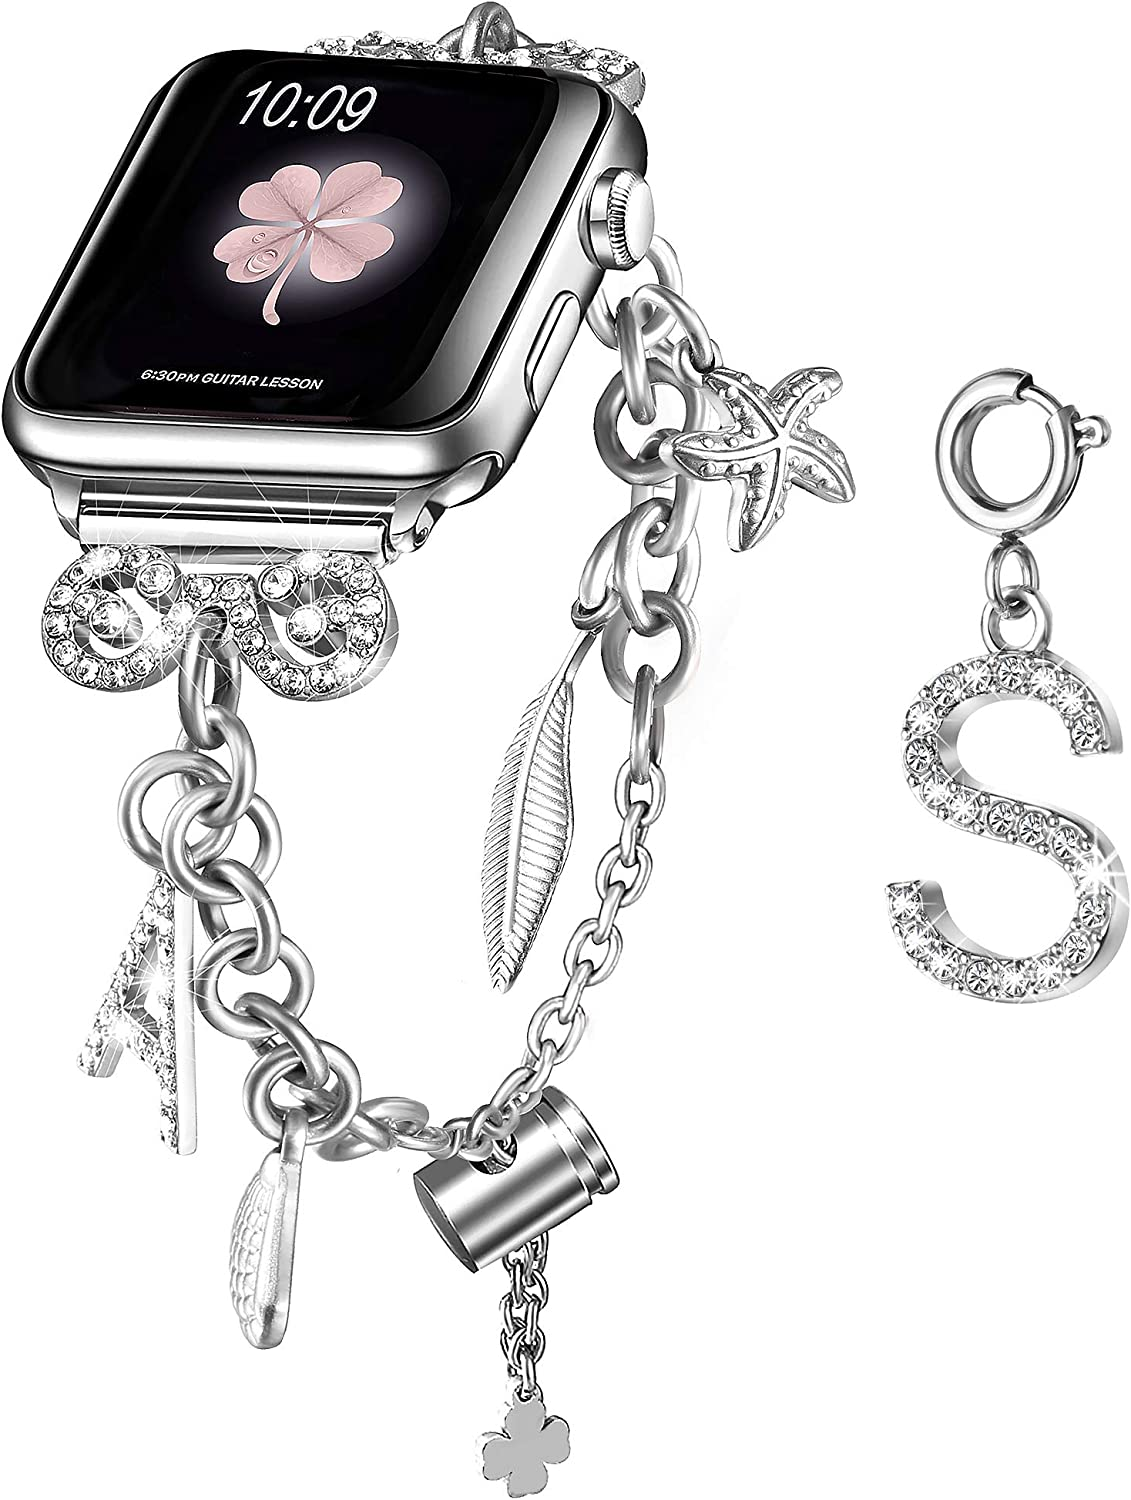 Secbolt Bling Multi-charm Bracelet and Letter S Charm for Apple Watch 38mm 40mm iWatch SE Series 6/5/4/3/2/1, Silver